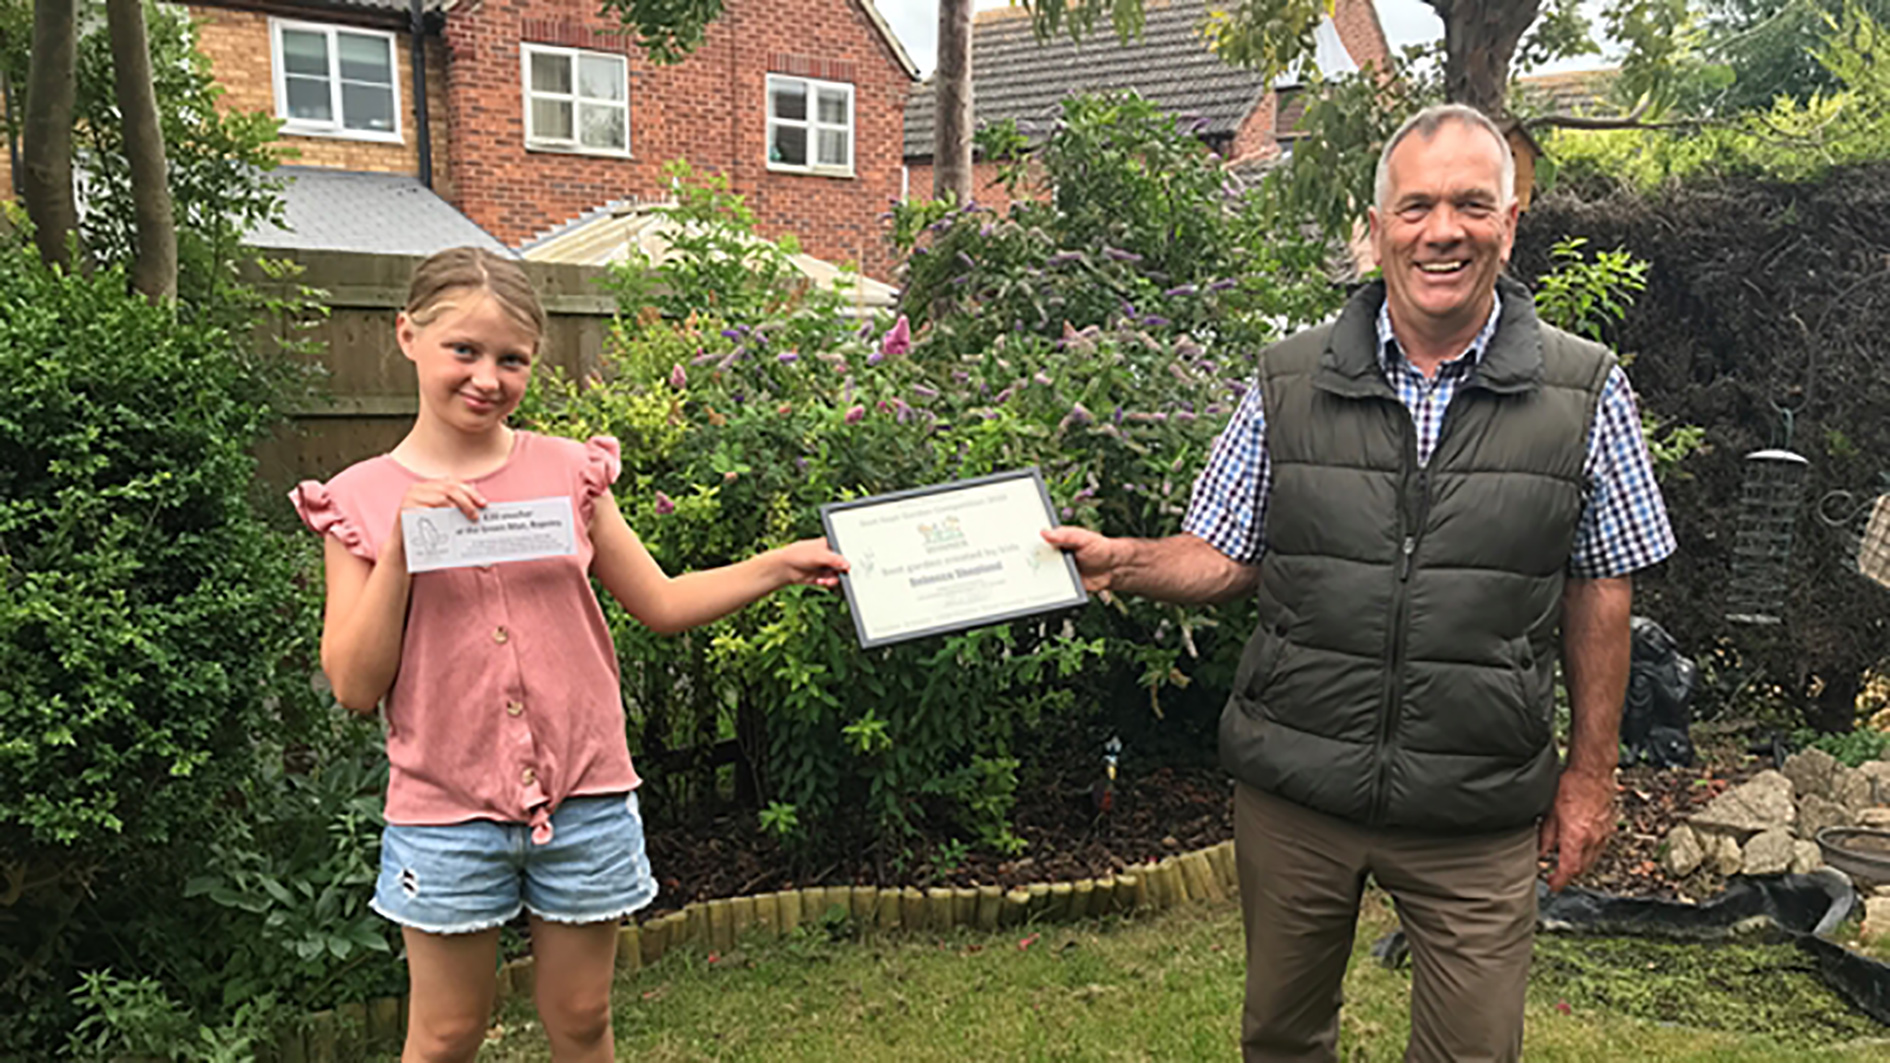 Garden expert John Stirland presents a certificate to Rebecca Shopland, winner of the Best Garden Created by Kids category in the Ropsley online garden competition